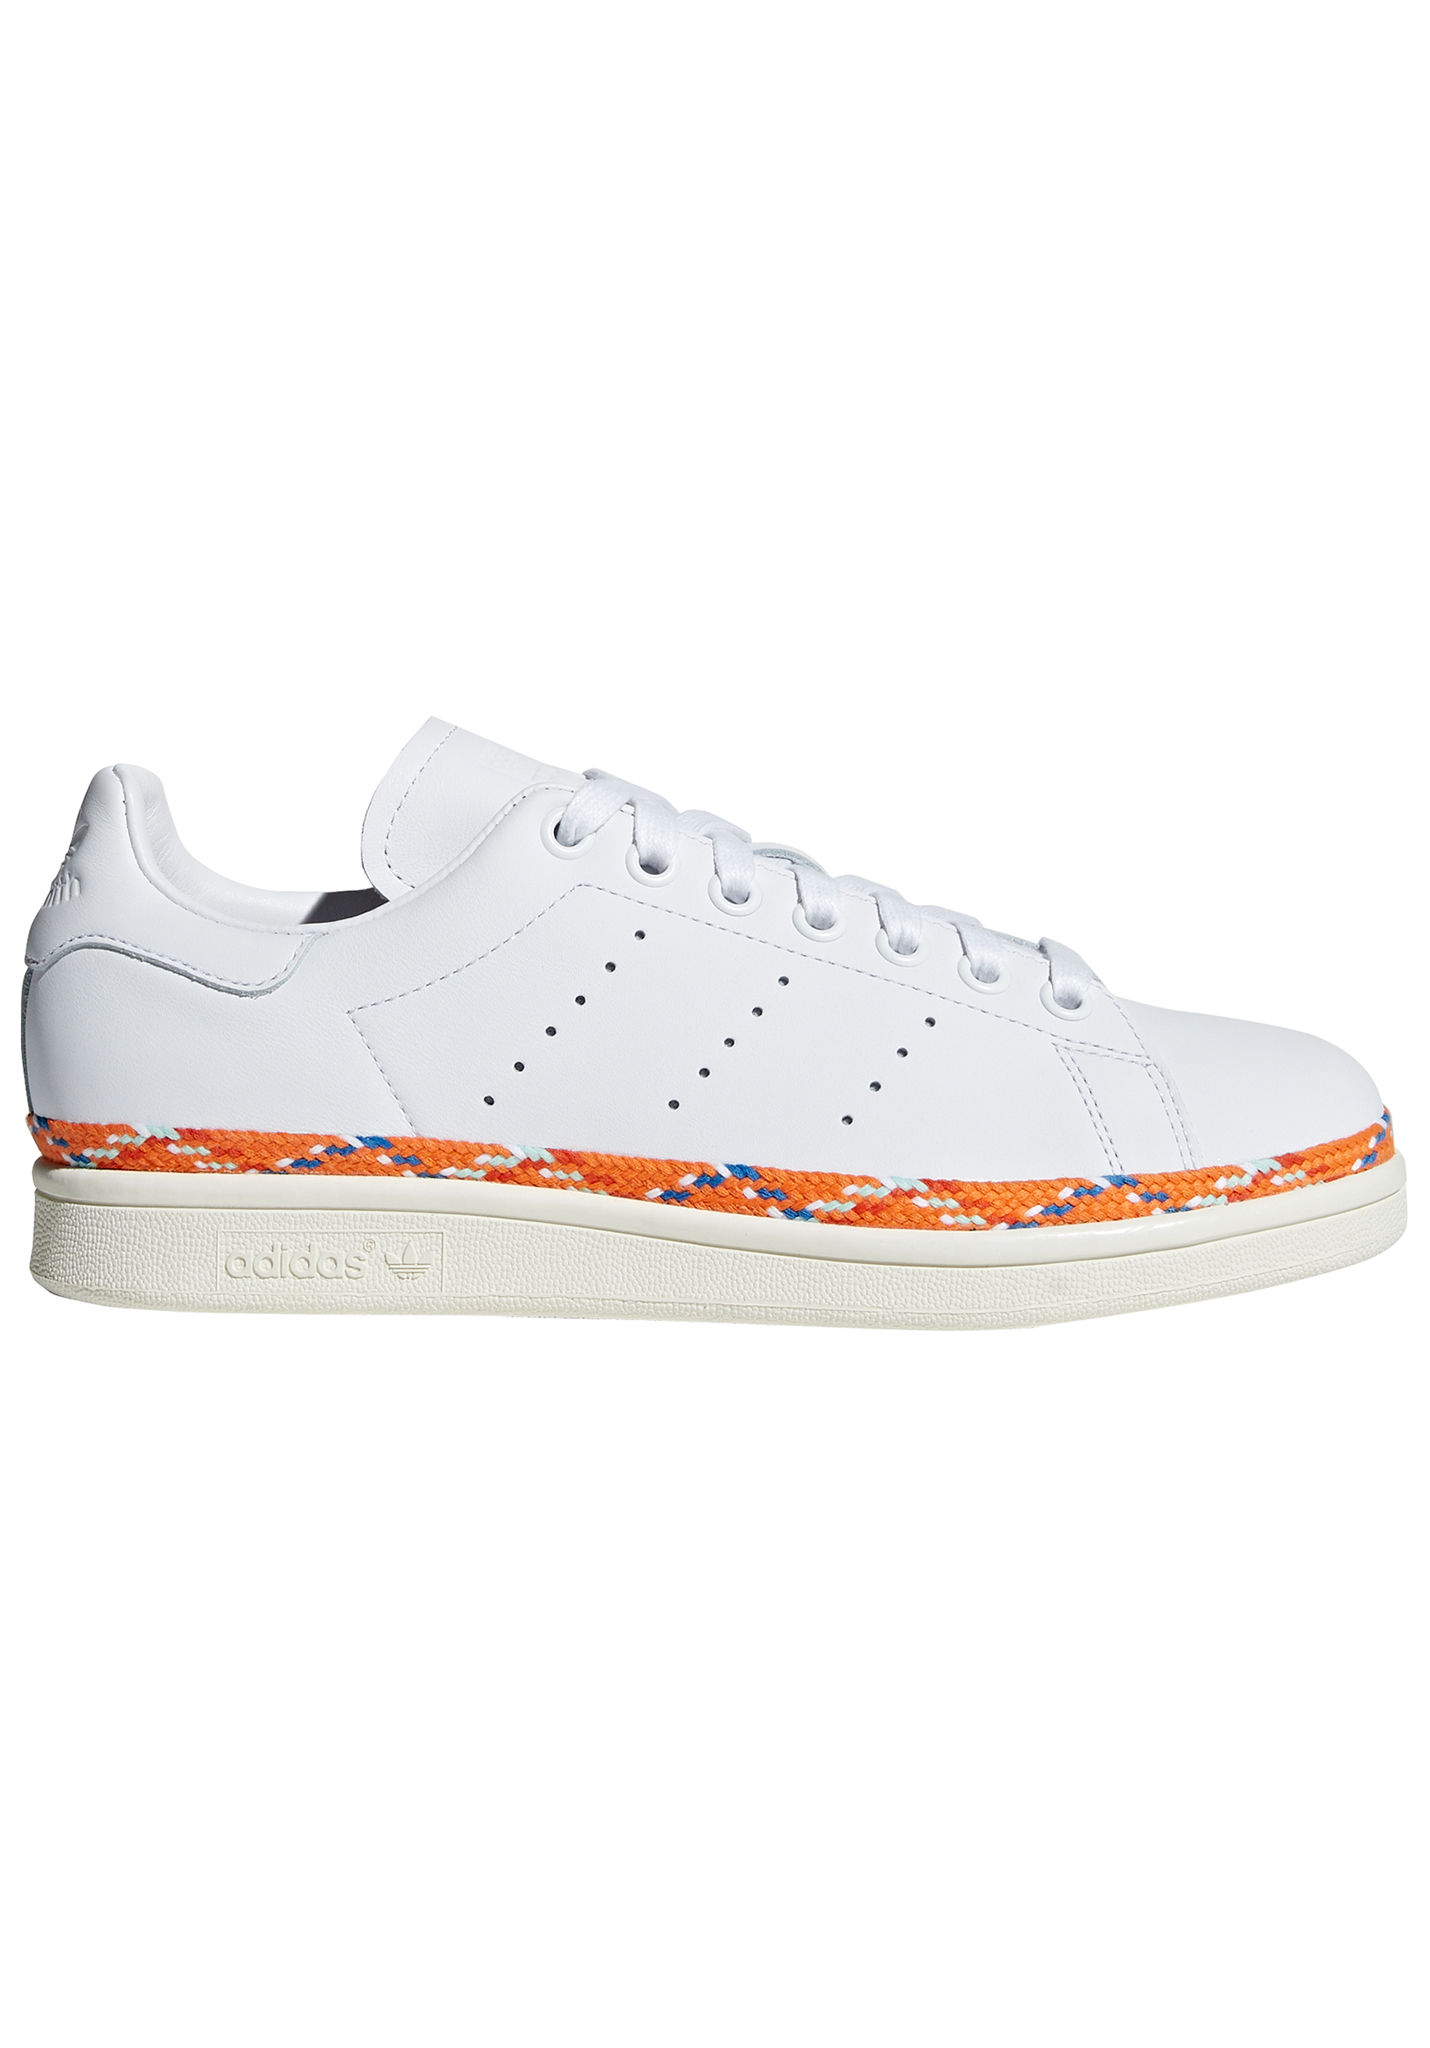 2495ab13f62 ADIDAS ORIGINALS Stan Smith New Bold - Sneakers voor Dames - Wit - Planet  Sports